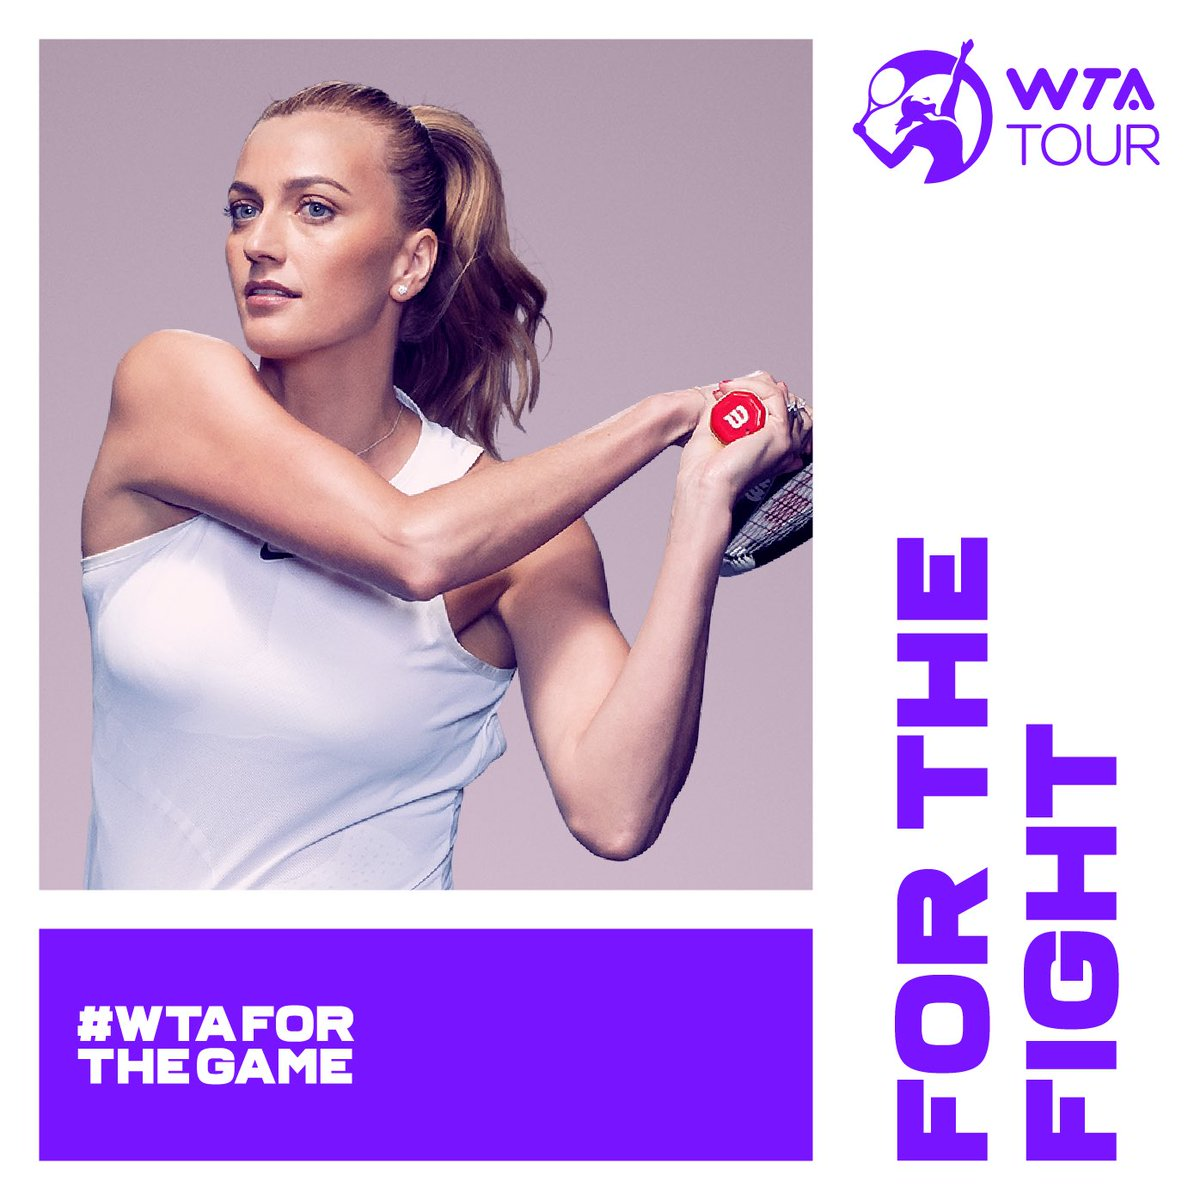 Welcome to the new era of the @WTA. I play for the game and something much bigger than myself. I play for the Fight.   #WTAForTheGame https://t.co/8LufaWTvLW